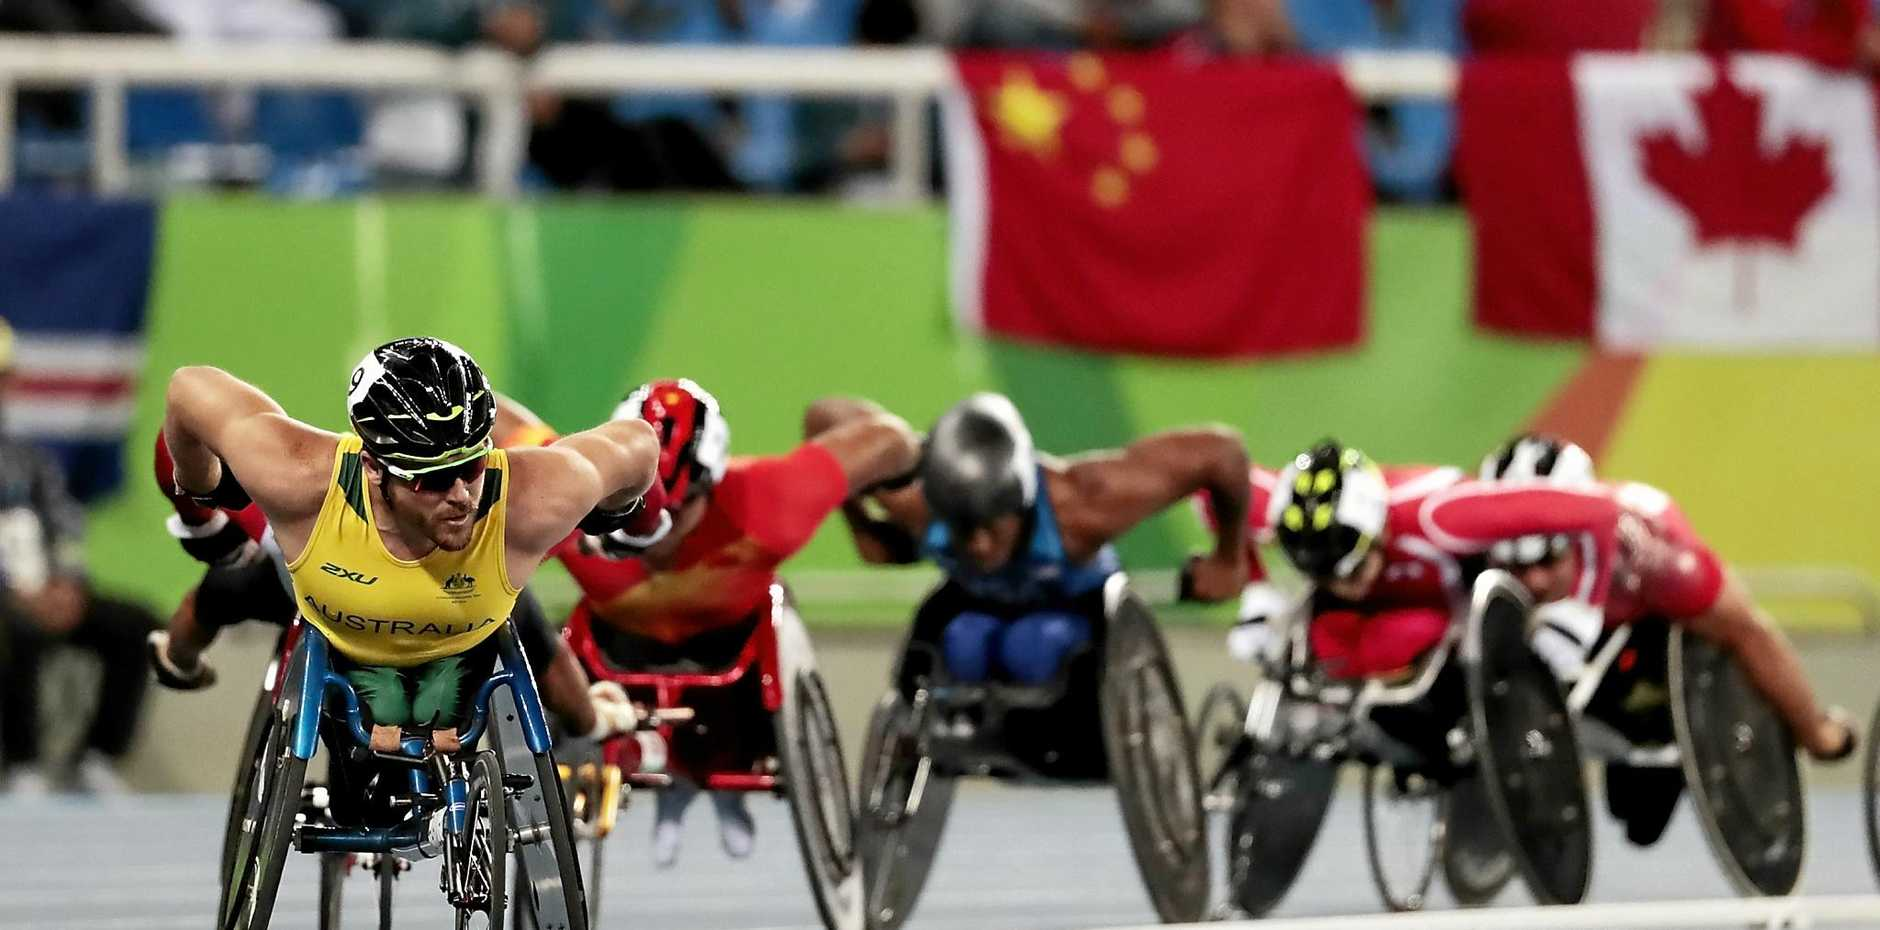 Kurt Fearnley of Australia on the track at the Rio 2016 Paralympic Games.